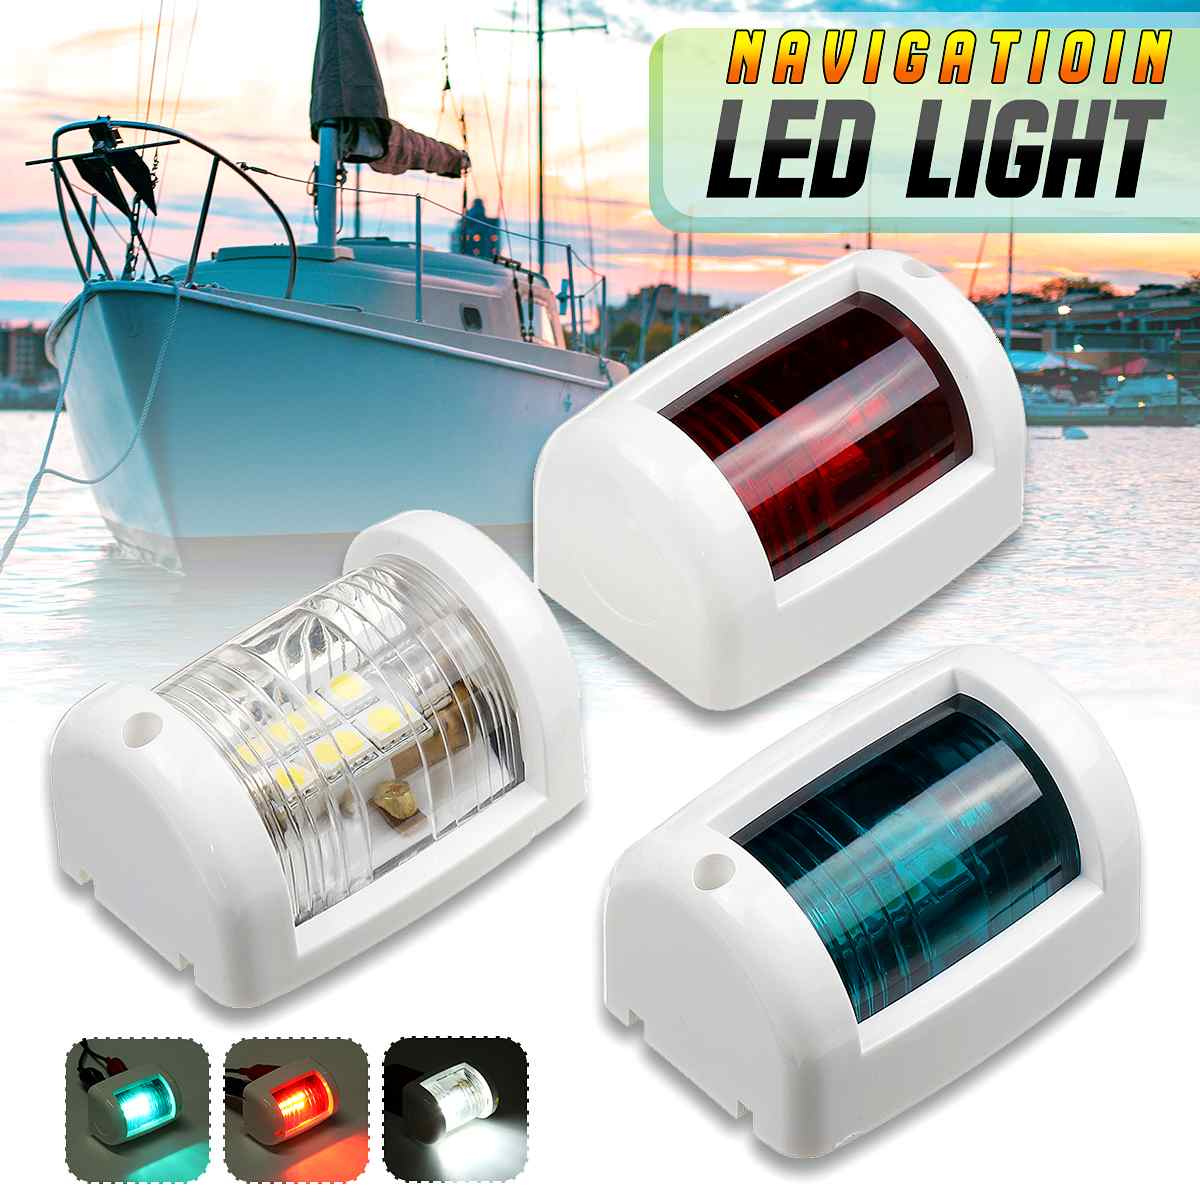 1pcs /1 Set 12V Mini LED Navigation Light Lamp LED Signal Lamp For Marine Boat Yacht Masthead Starboard Port New Arrival 2019